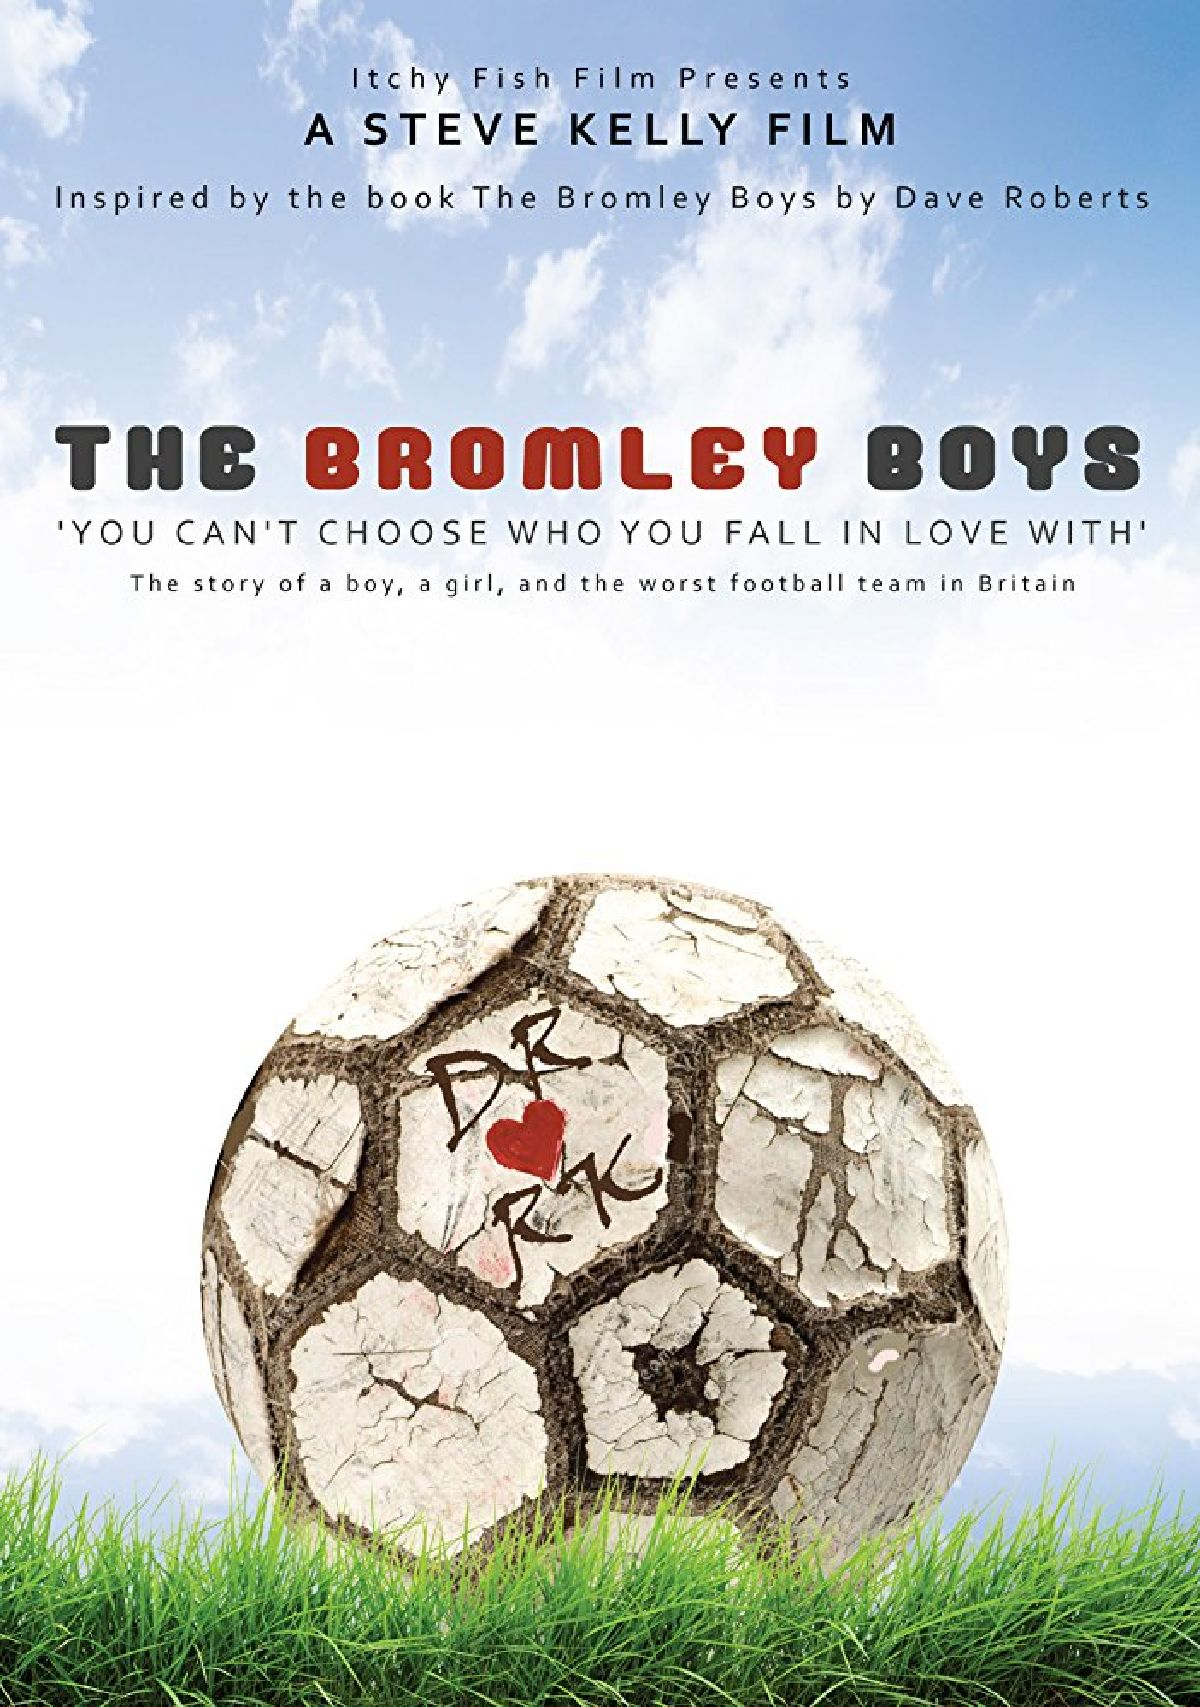 'The Bromley Boys' movie poster